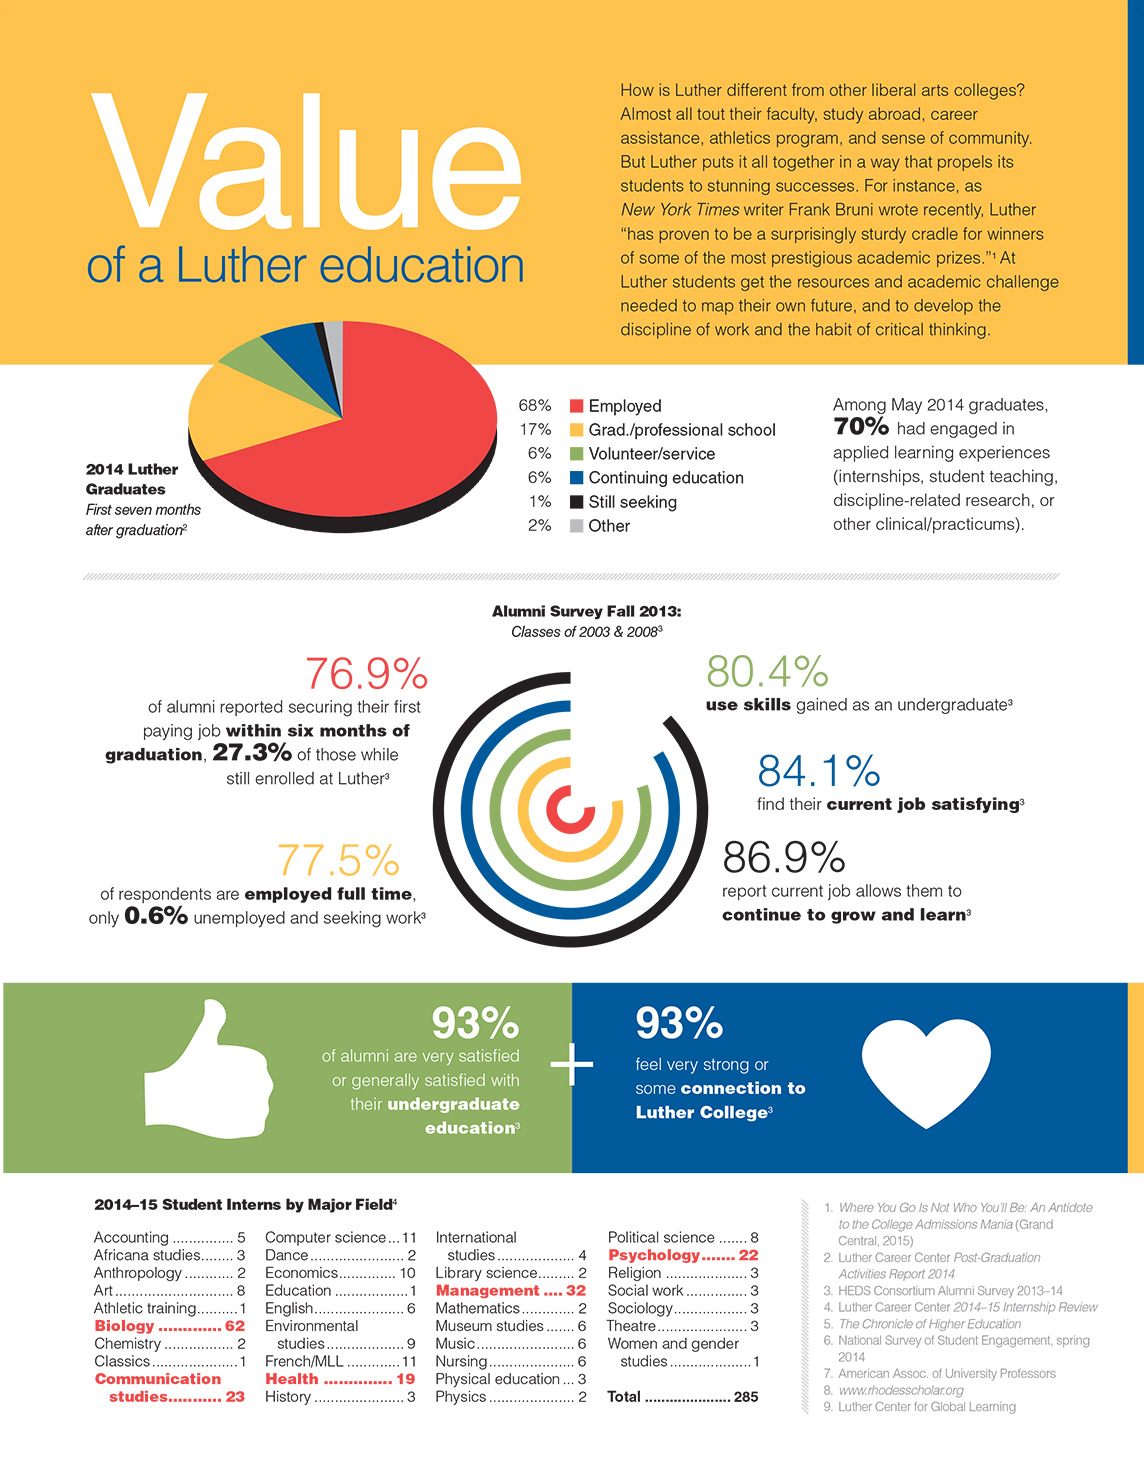 Infographic examining the value of a Luther education.